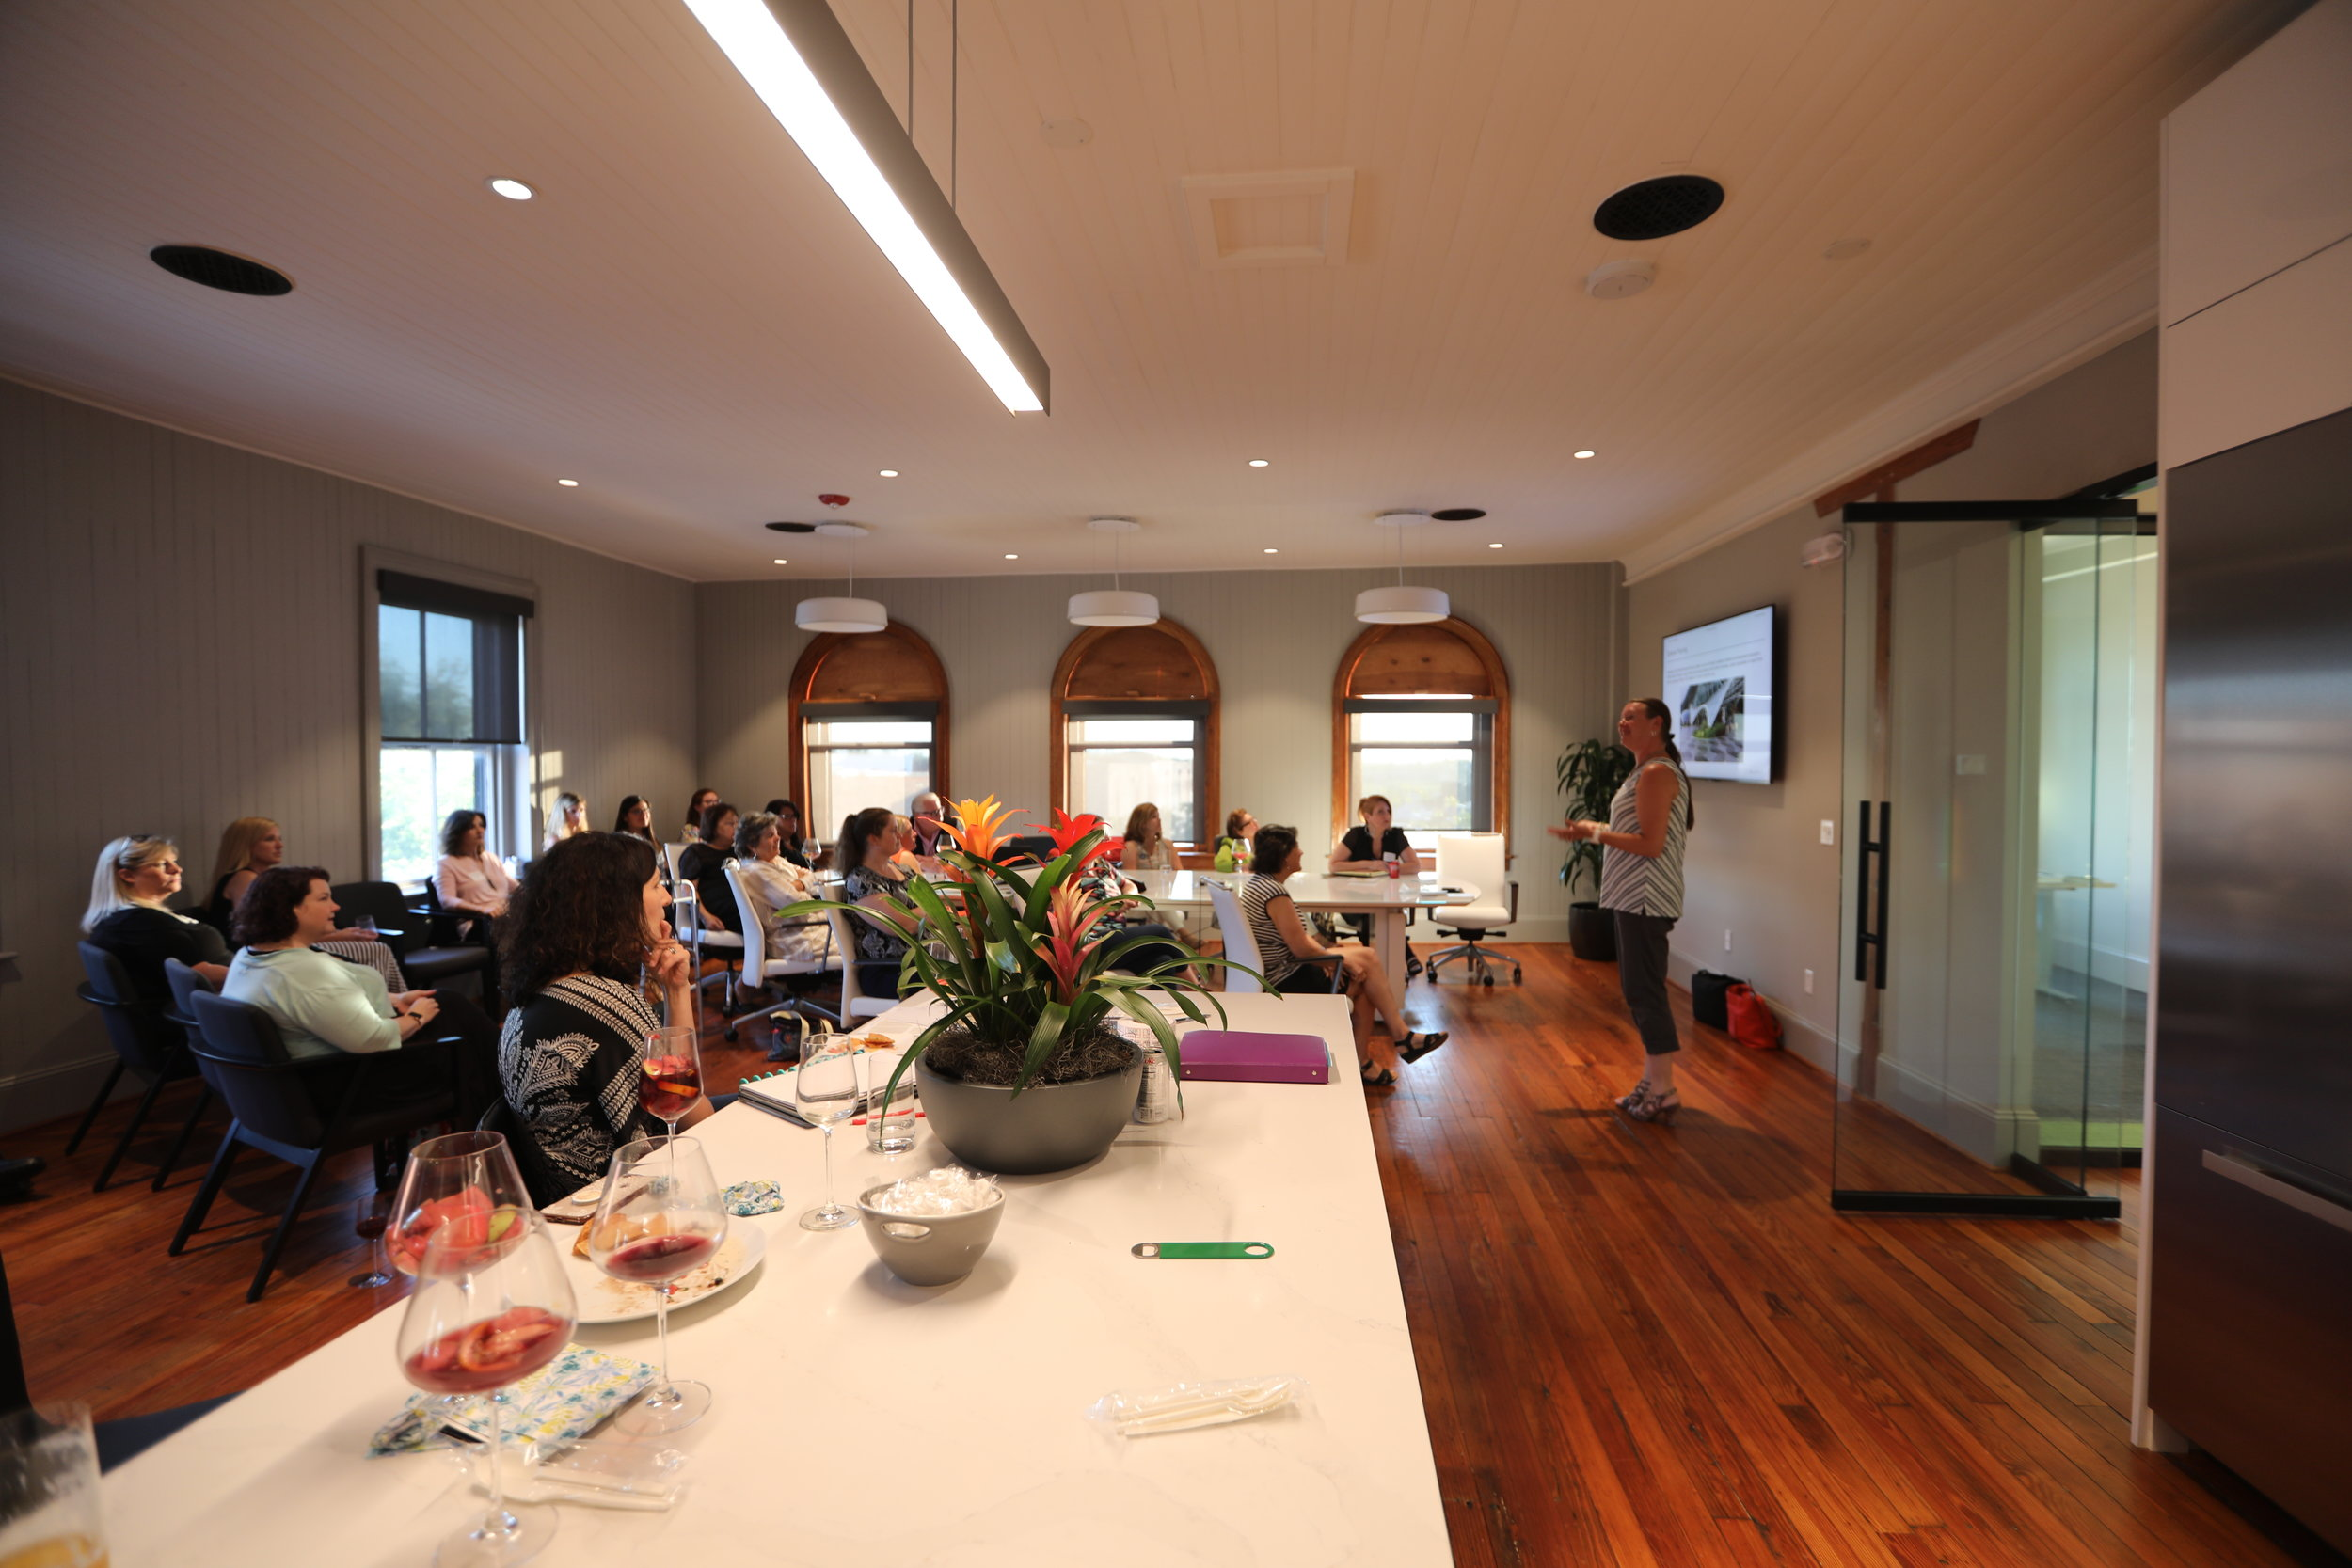 CEUs by the Sea - Kesseböhmer USA hosted the Eastern Carolina's Chapter of the National Kitchen and Bath Association (NKBA) June 21 & 22 for a weekend of enriching continuing eduction hours!